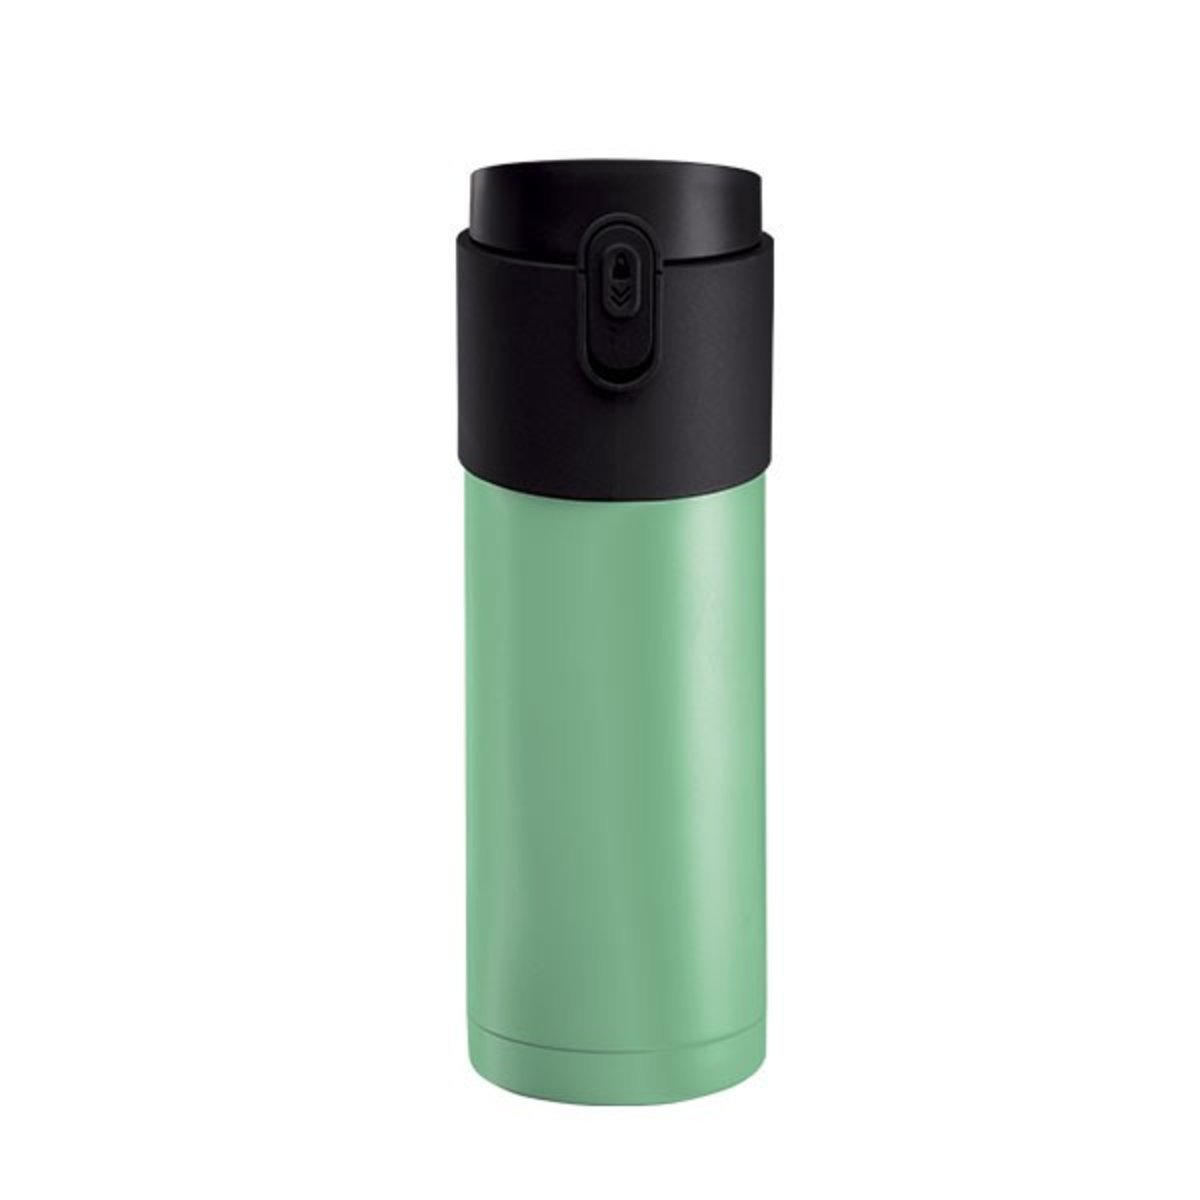 Pao Thermo Mug (Emerald Green with Black Lid)